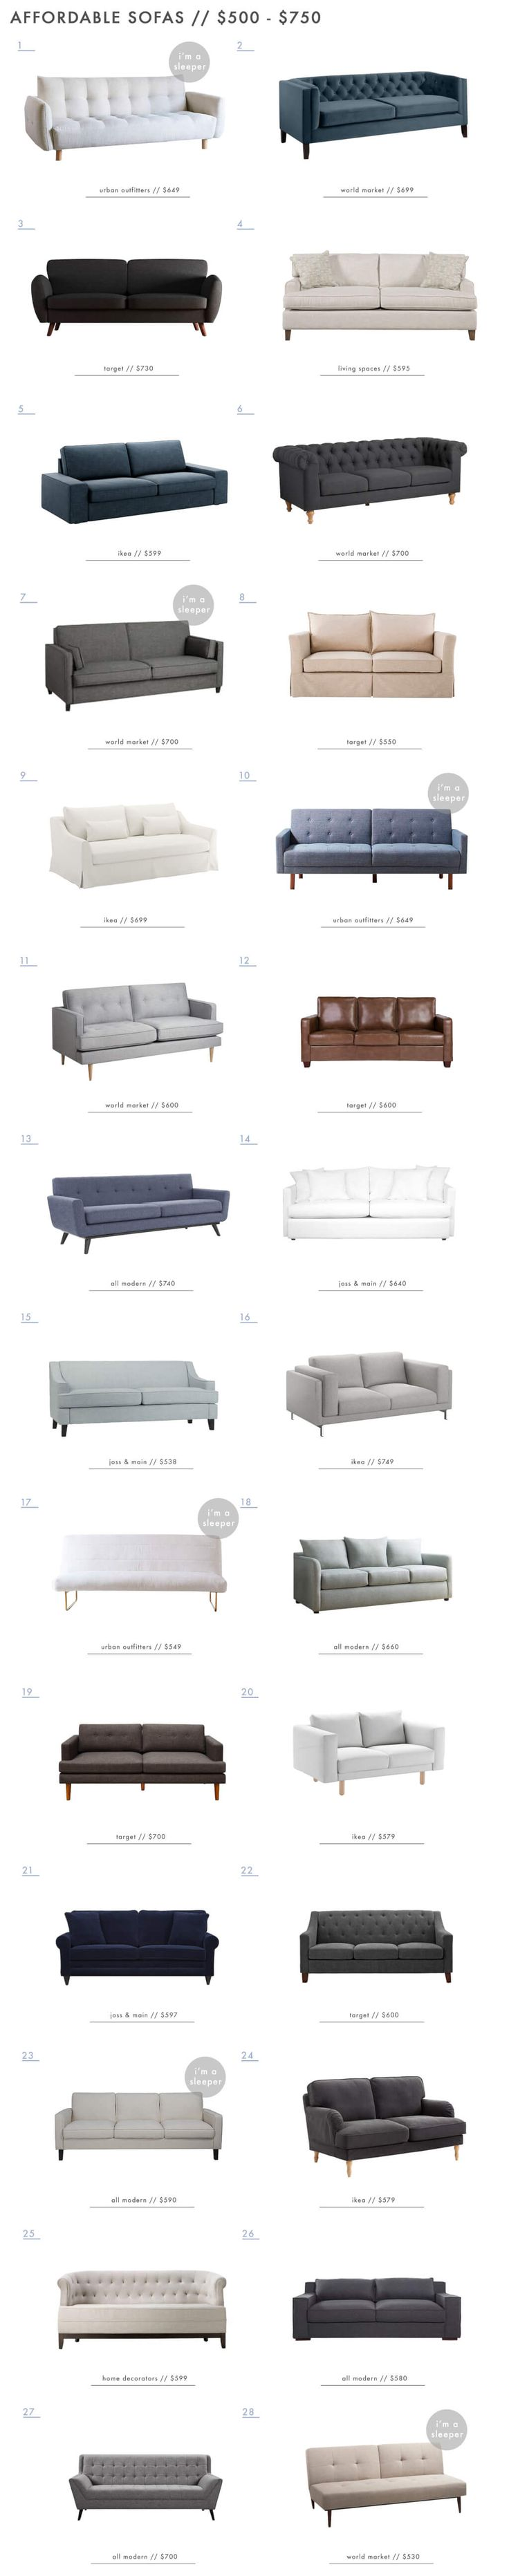 """When it comes to sofas and the internet, the results are pretty overwhelming. Google the word """"sofa"""" and you get over 530 MILLION results, which means there is a plethora of people looking for the right sofa and a plethora of the WRONG sofas being purchased by said people. And we get it, buying online... Read More …"""